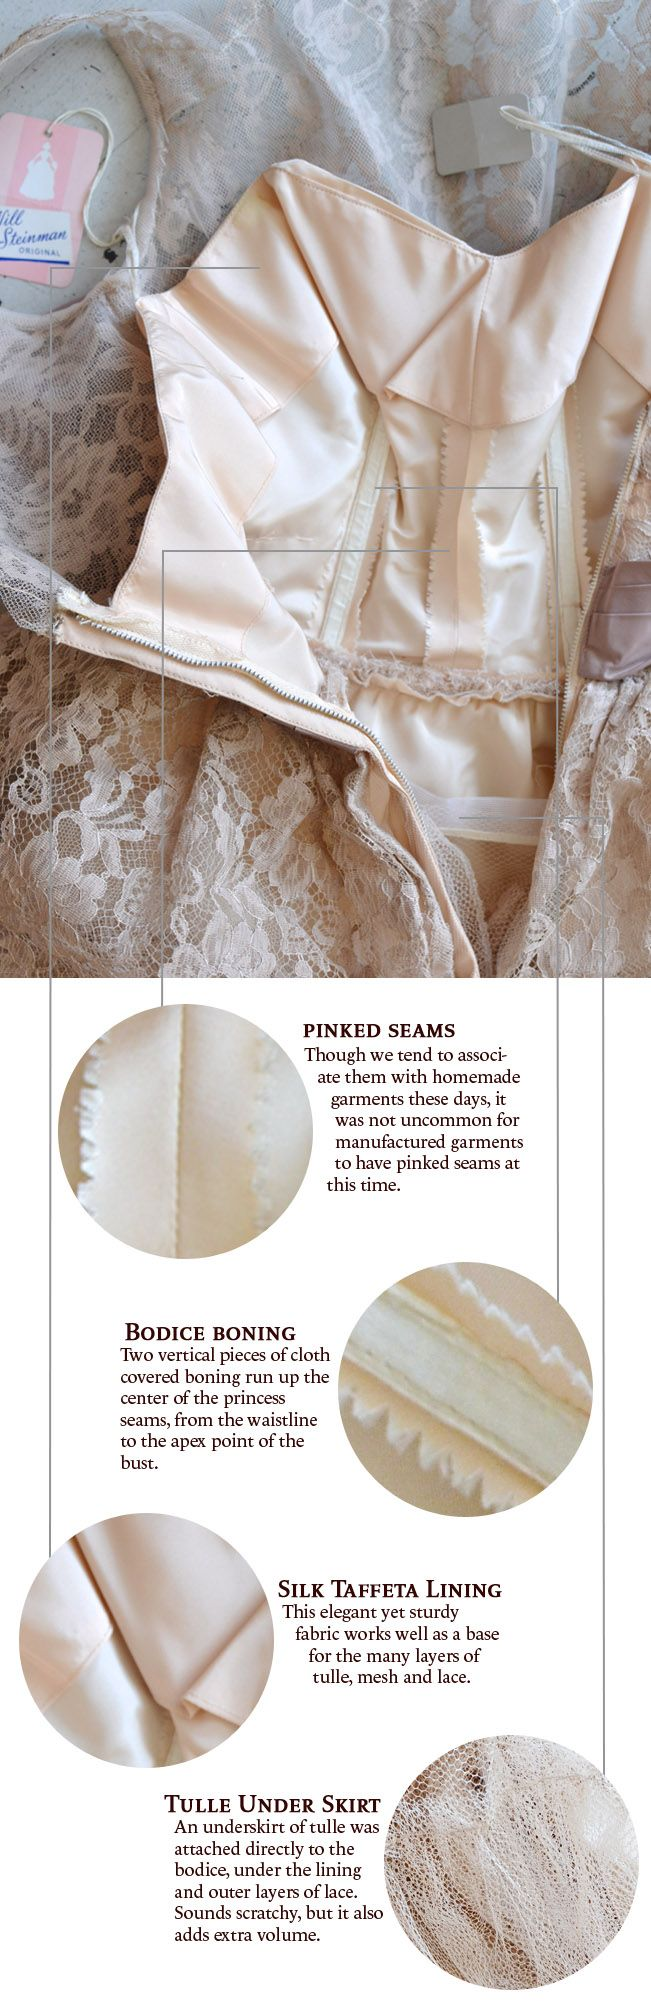 Behind the Seams: Construction Details from DearGolden